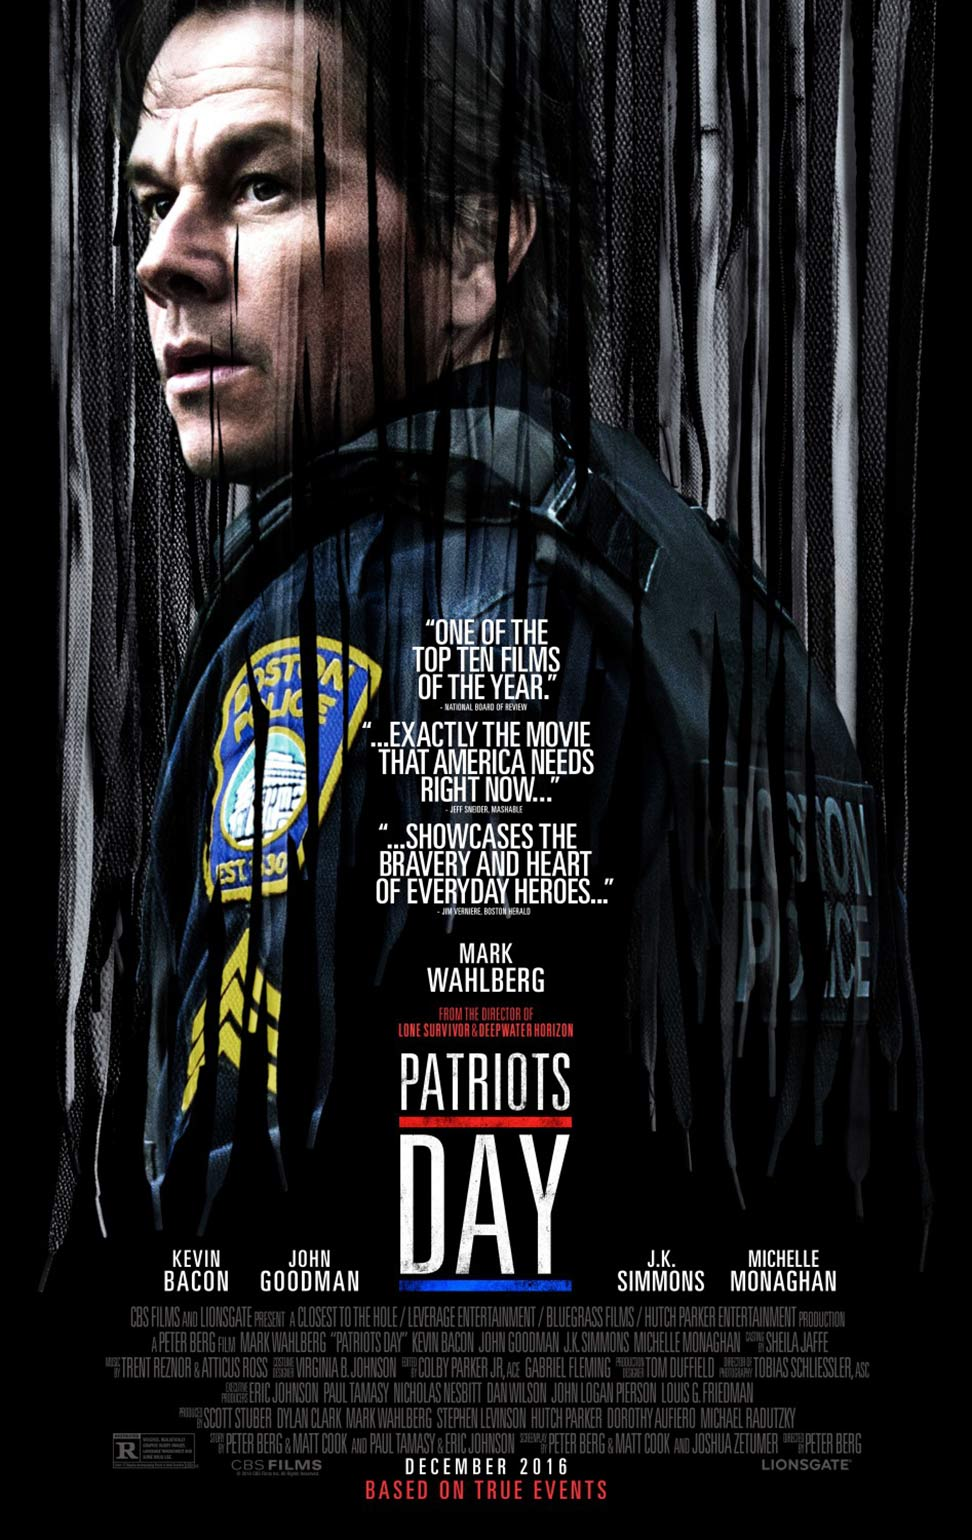 Patriots Day (2017) Poster #1 - Trailer Addict Mark Wahlberg